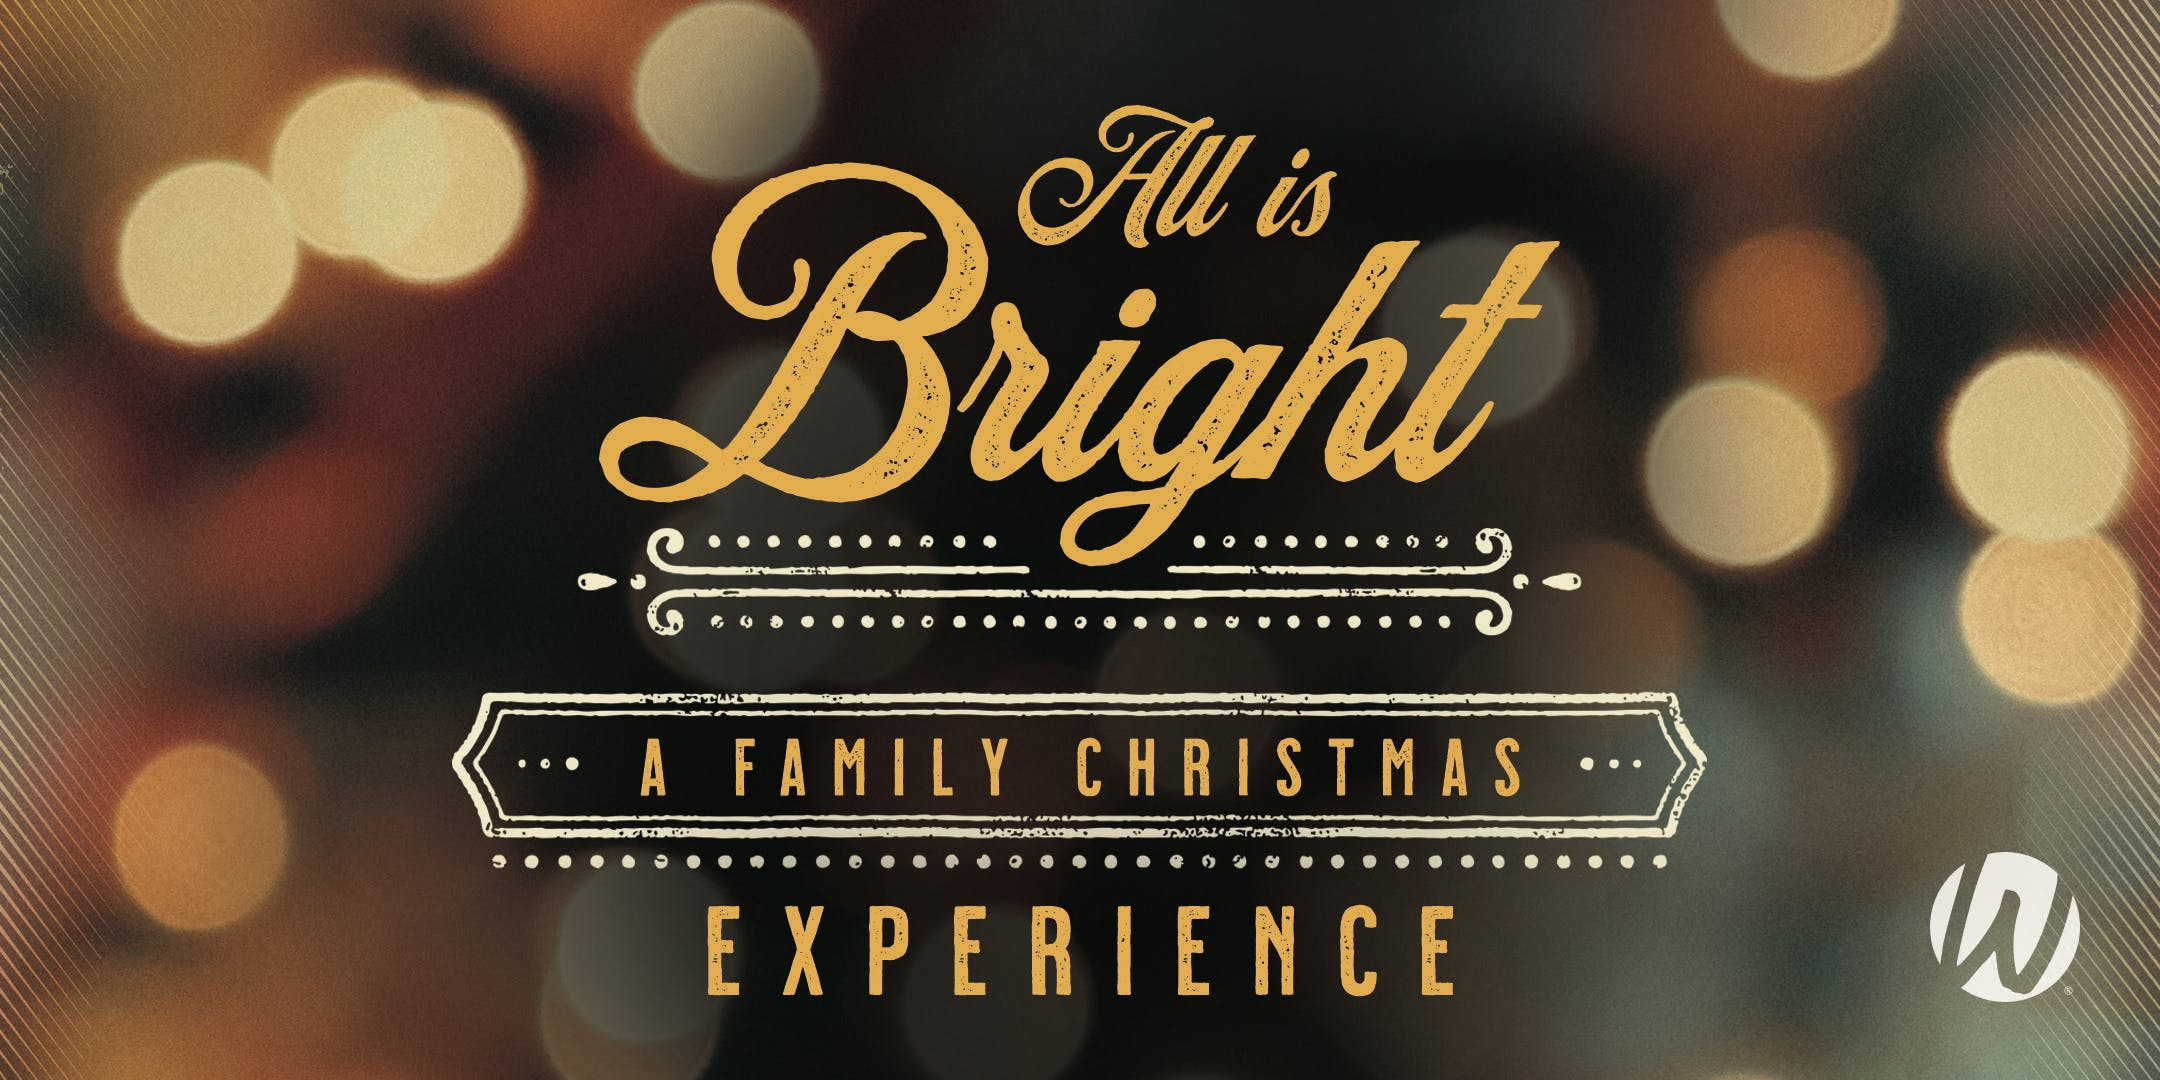 ALL is BRIGHT - First Baptist Church, Moody,